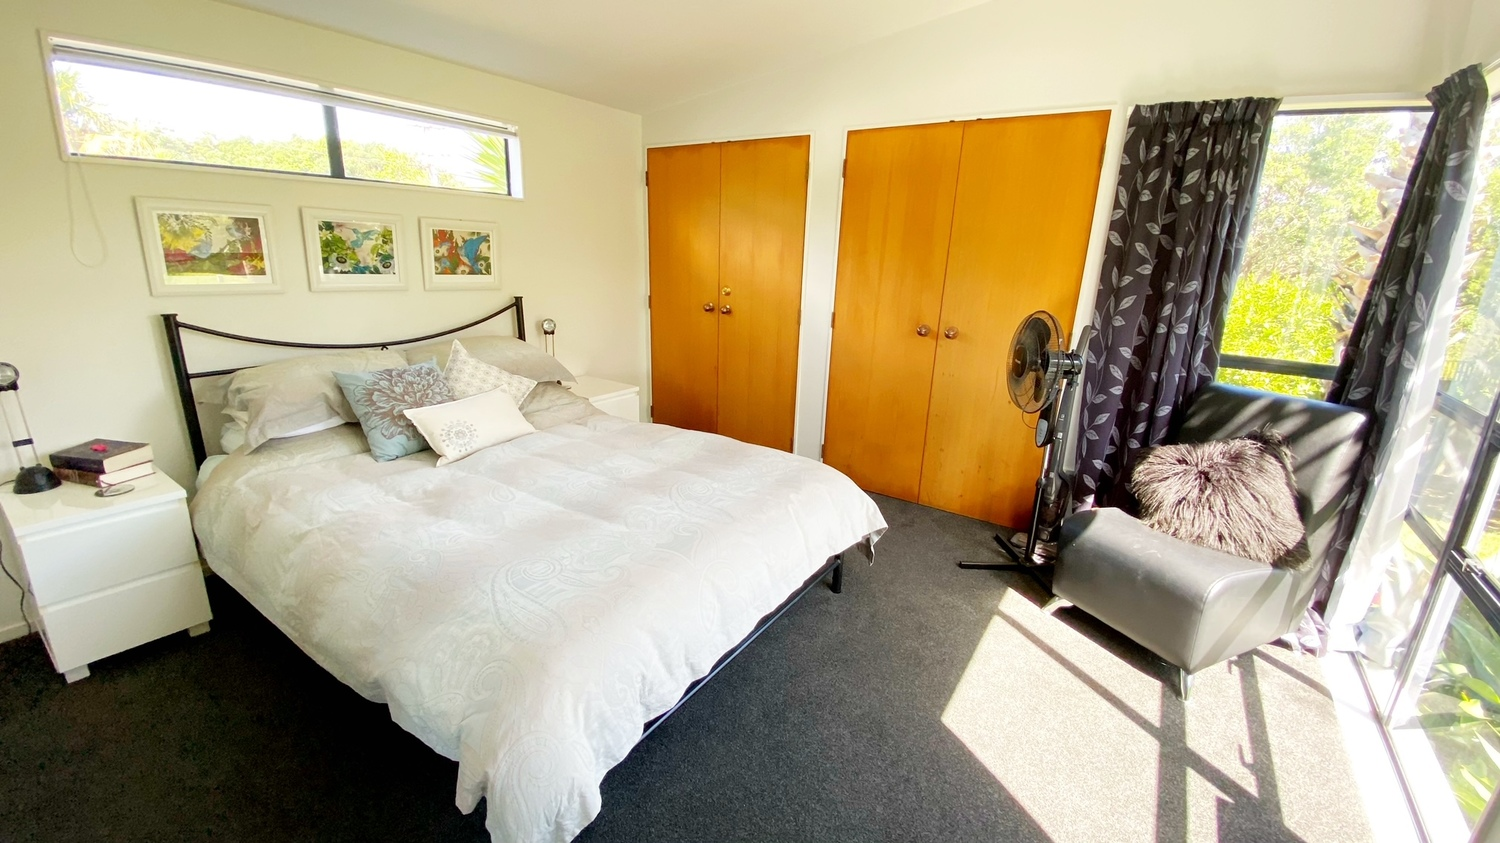 16._Woodlands_Bedroom_1_with_blind_open_above_bed.msg_1500x843.jpg